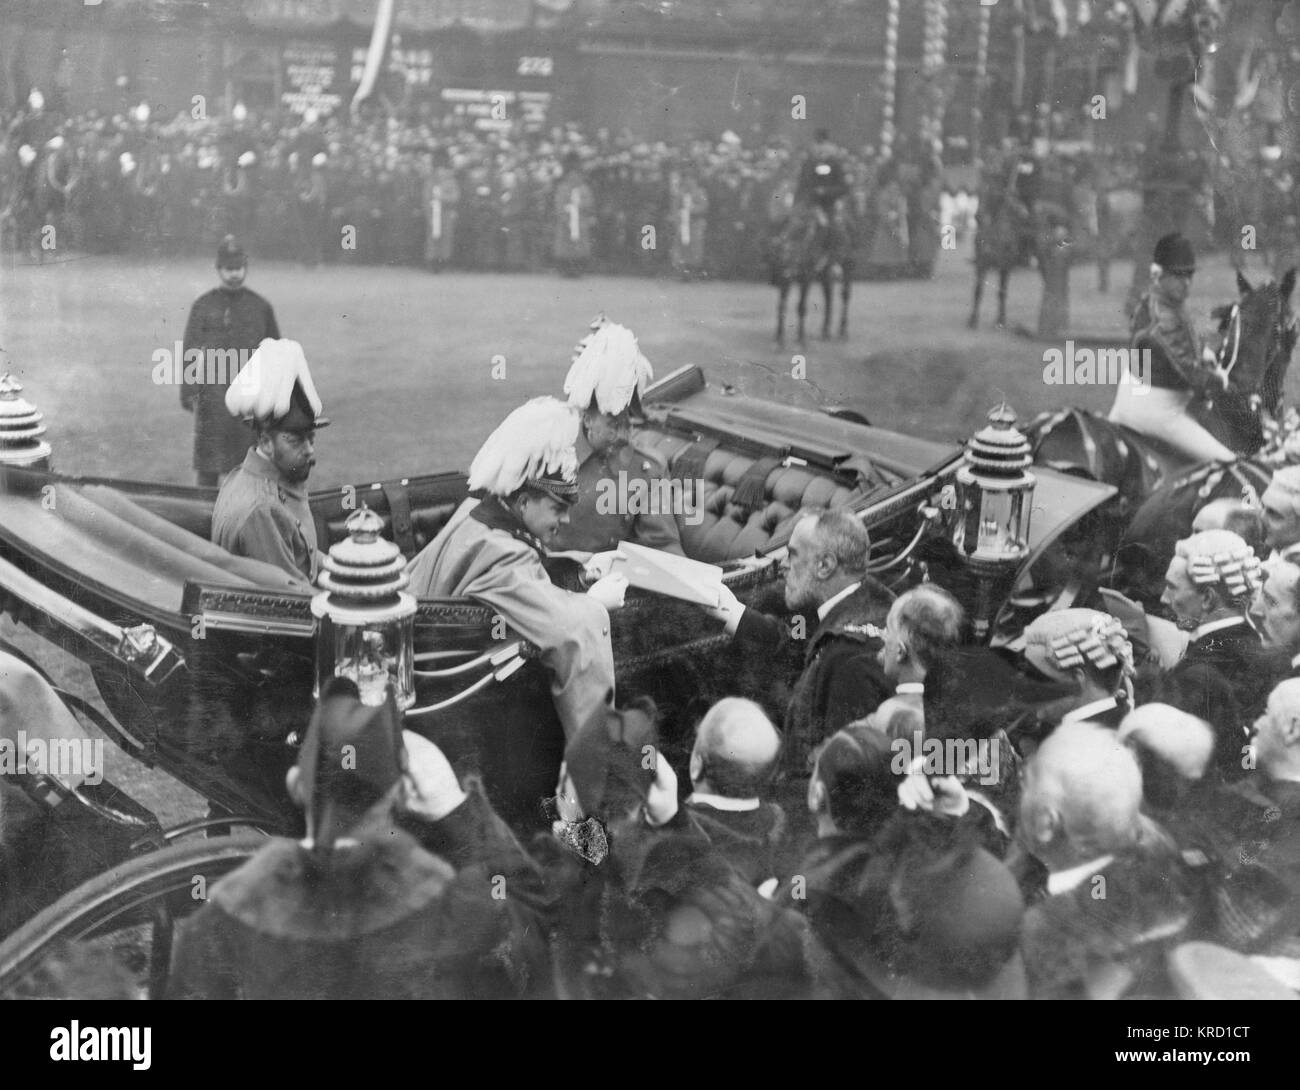 King Manuel II of Portugal (1889-1932, reigned 1908-1910) in an open carriage, receiving an address from the Mayor - Stock Image